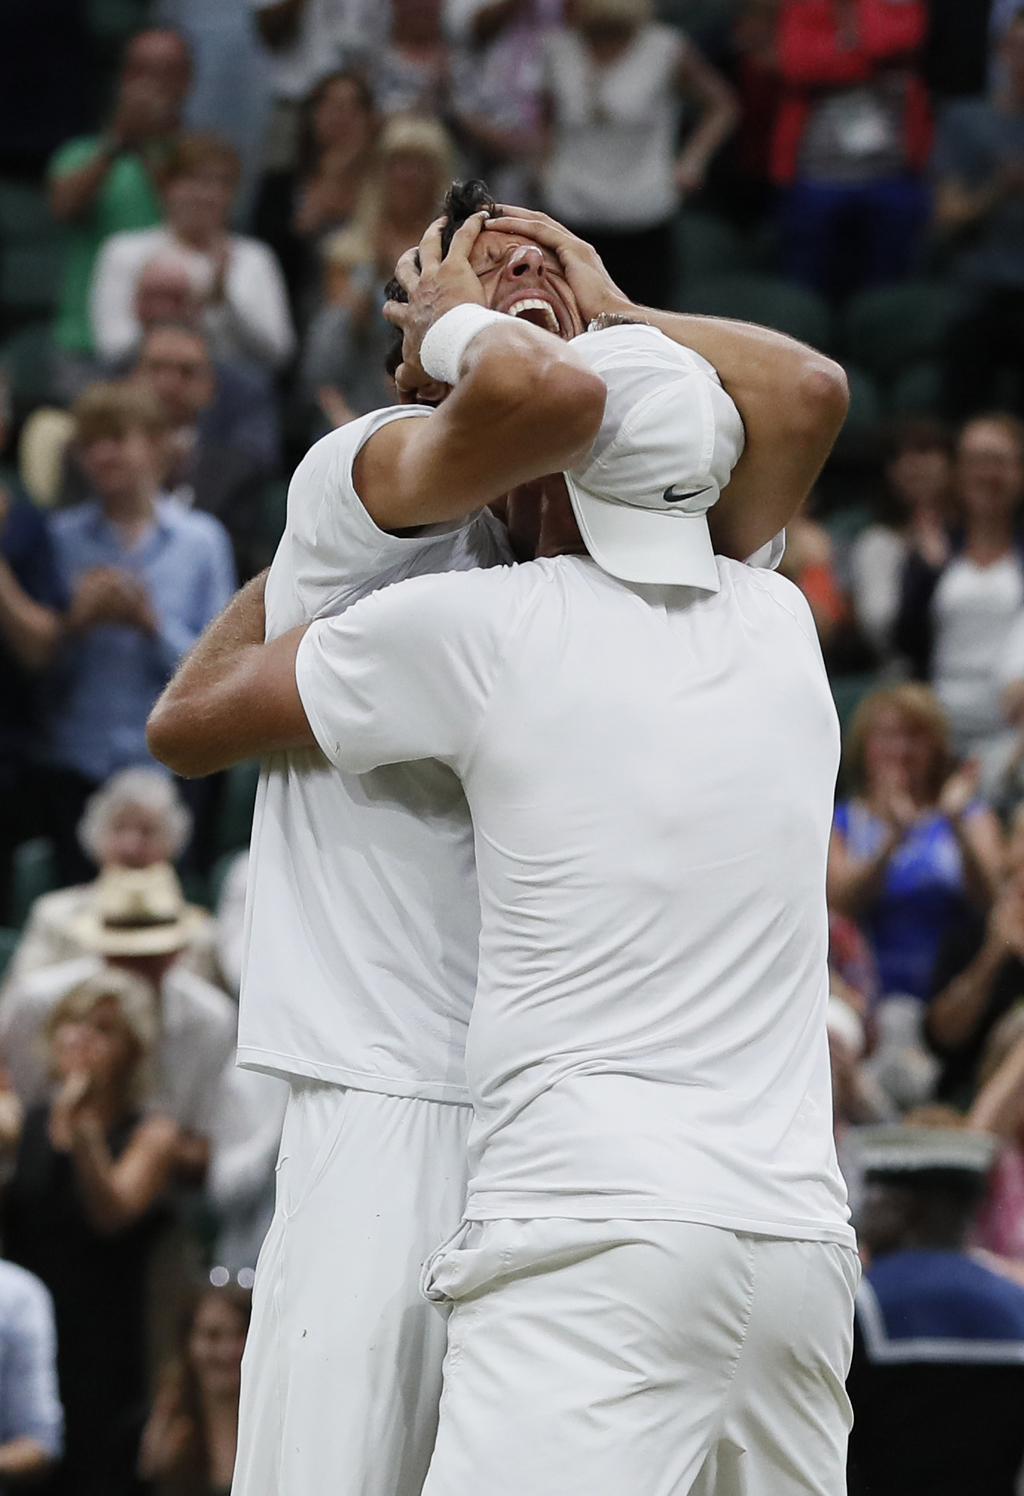 Poland's Lukasz Kubot, right, and Brazil's Marcelo Melo, hug as they celebrate after defeating Austria's Oliver Marach, and Croatia's Mate Pavic in th